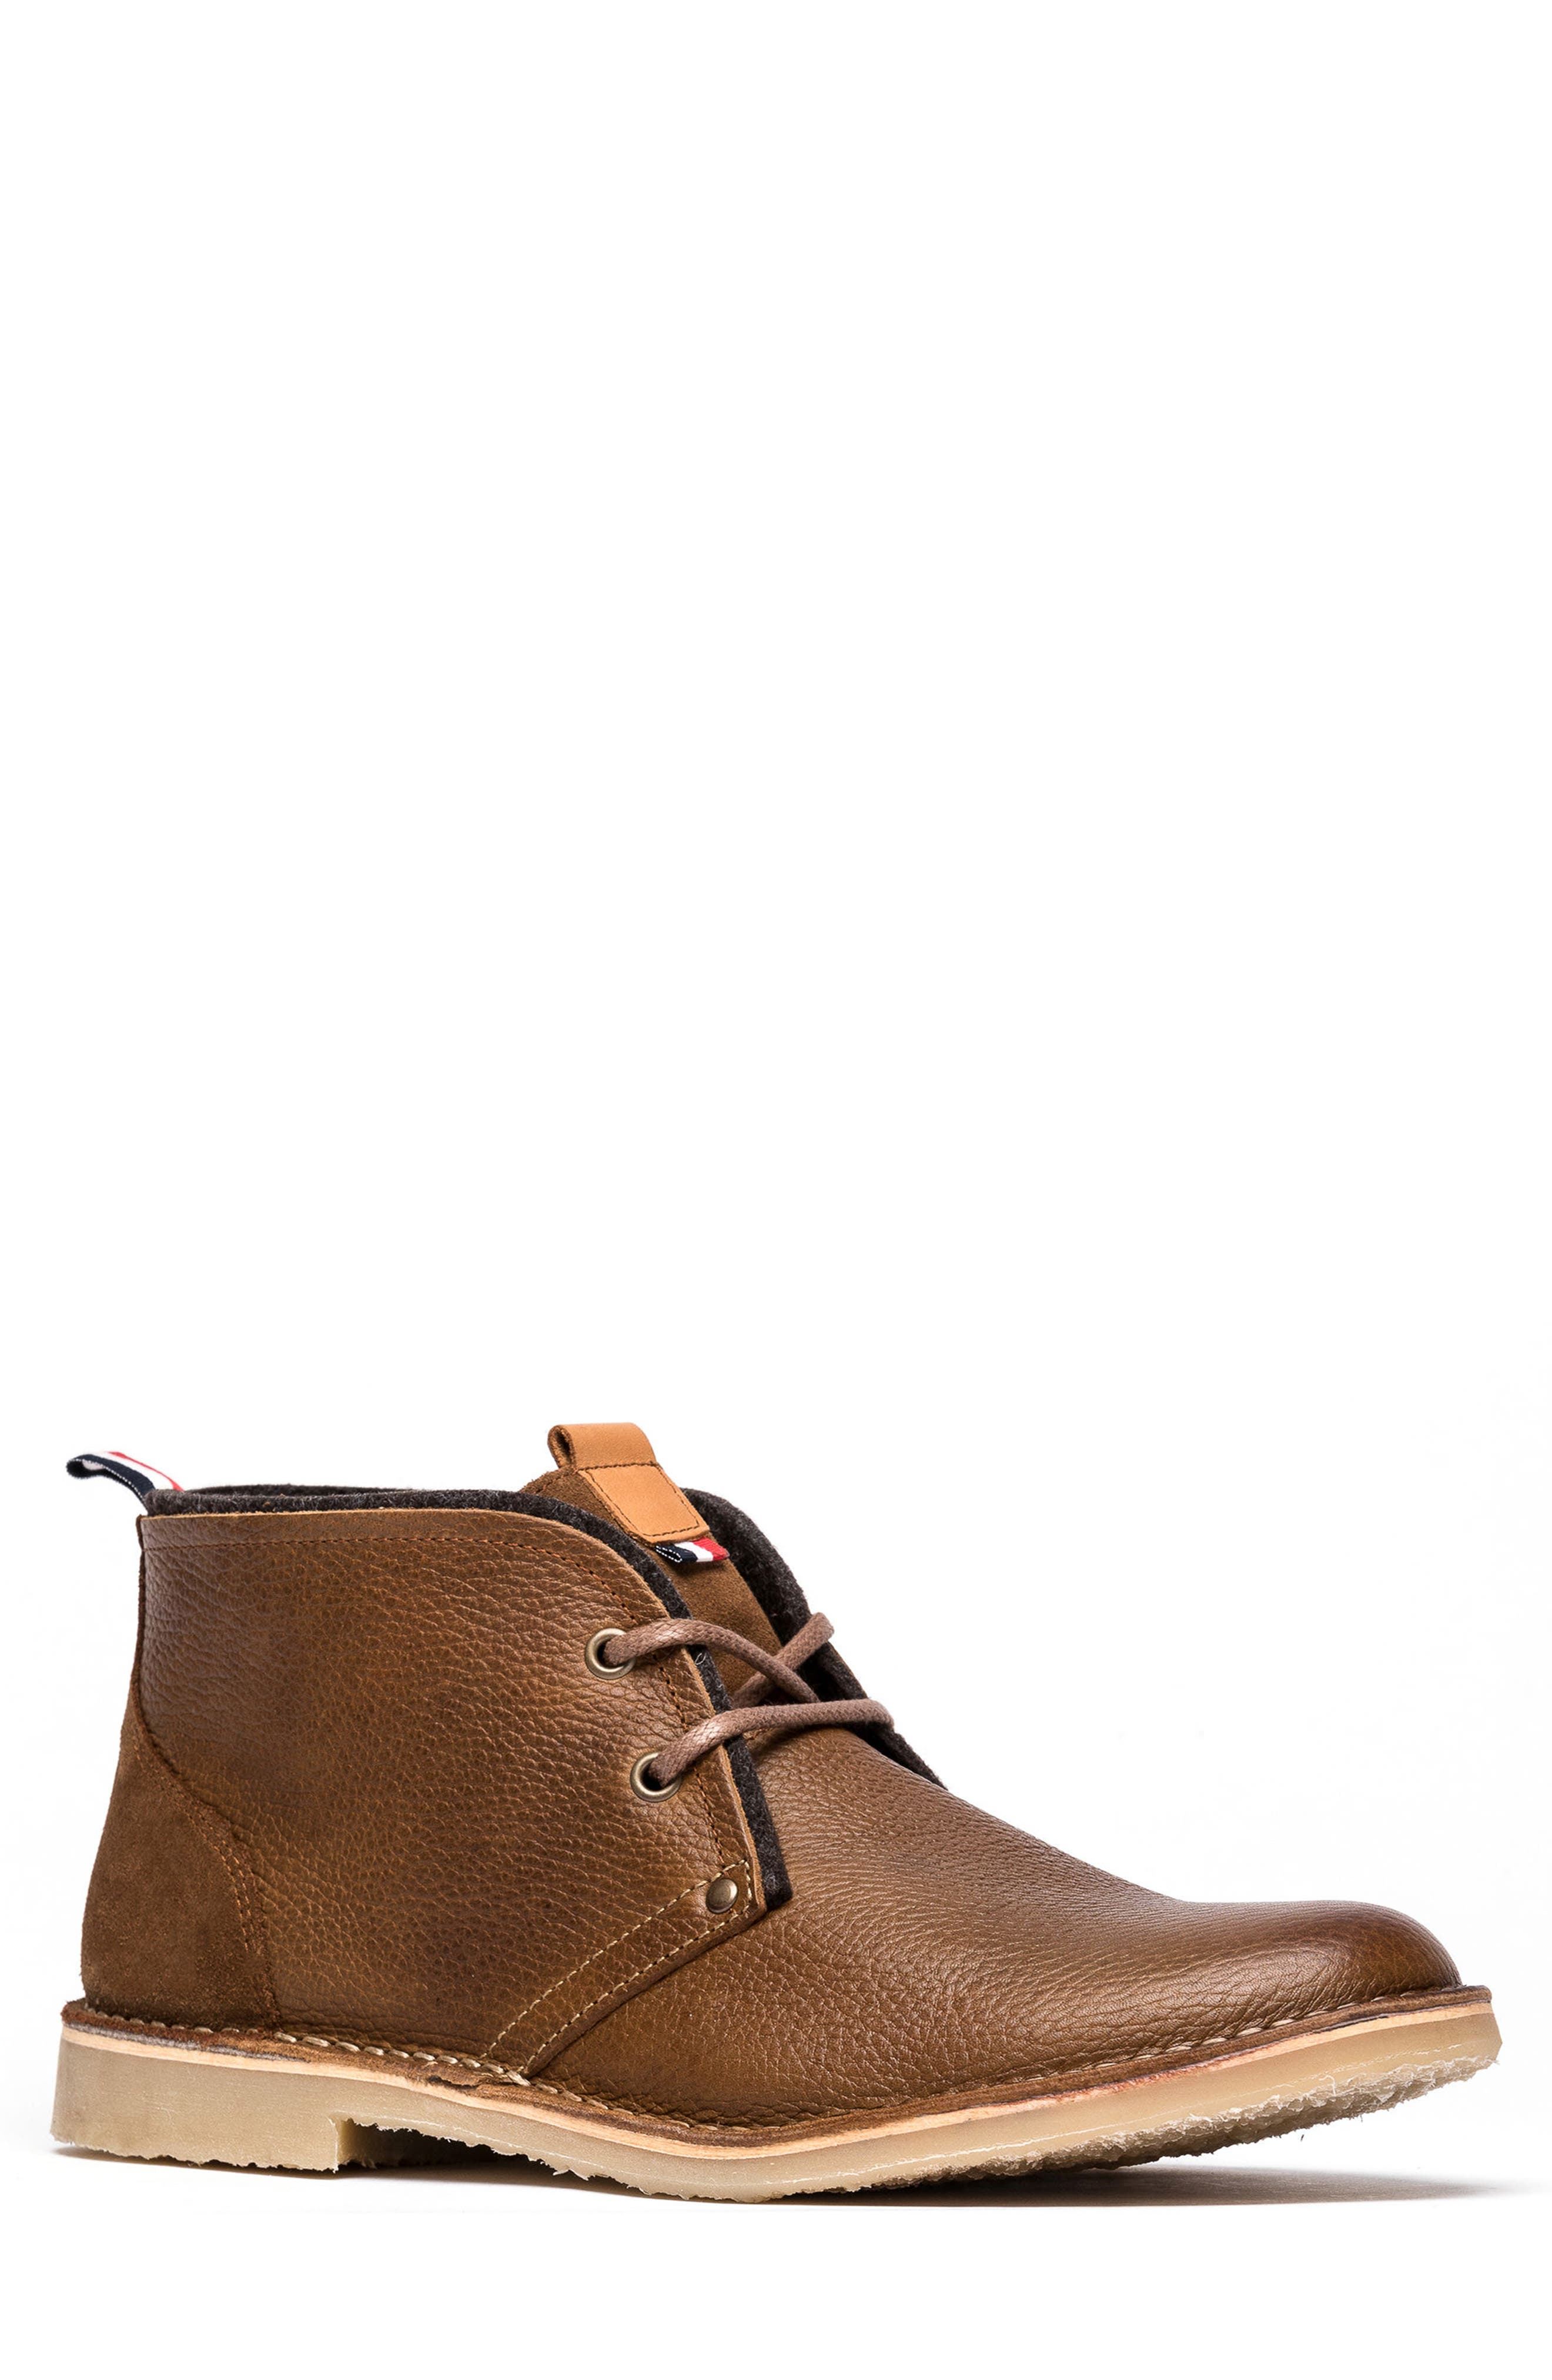 Drury Chukka Boot,                         Main,                         color, 218